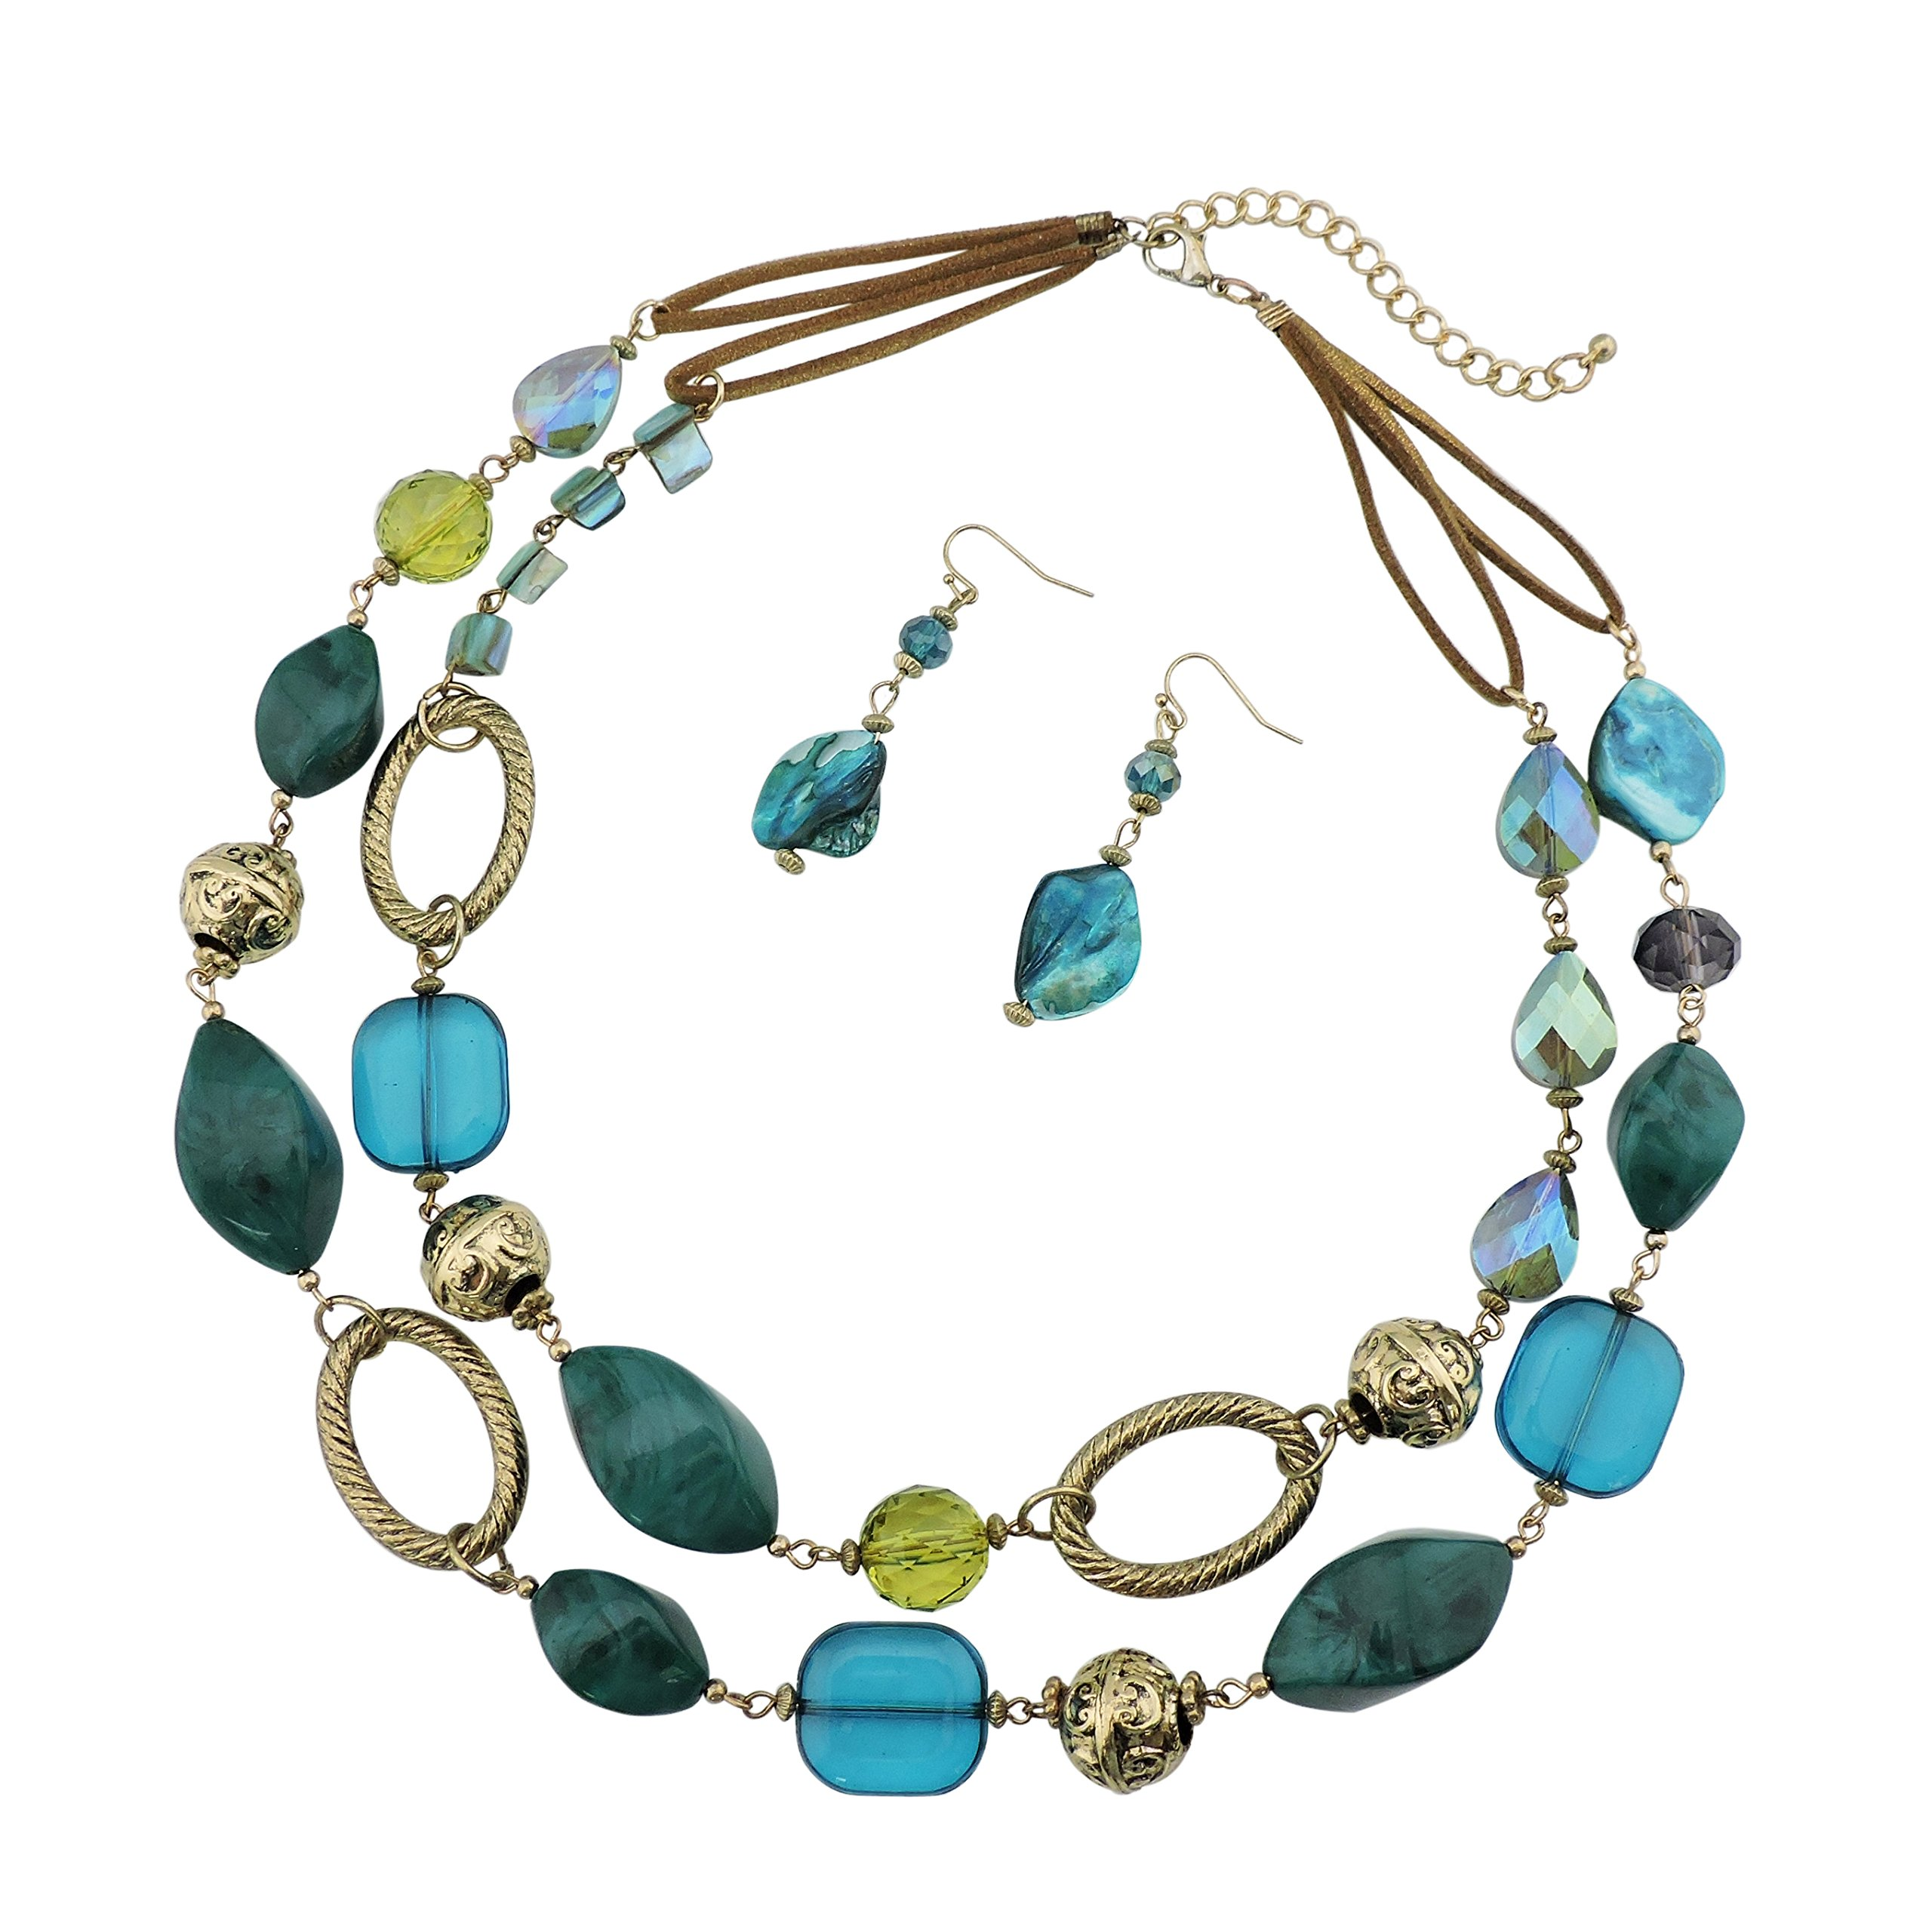 Bocar 2 Strand Statement Choker Shell Necklace and Earring Set for Women Gift (NK-10370-teal)